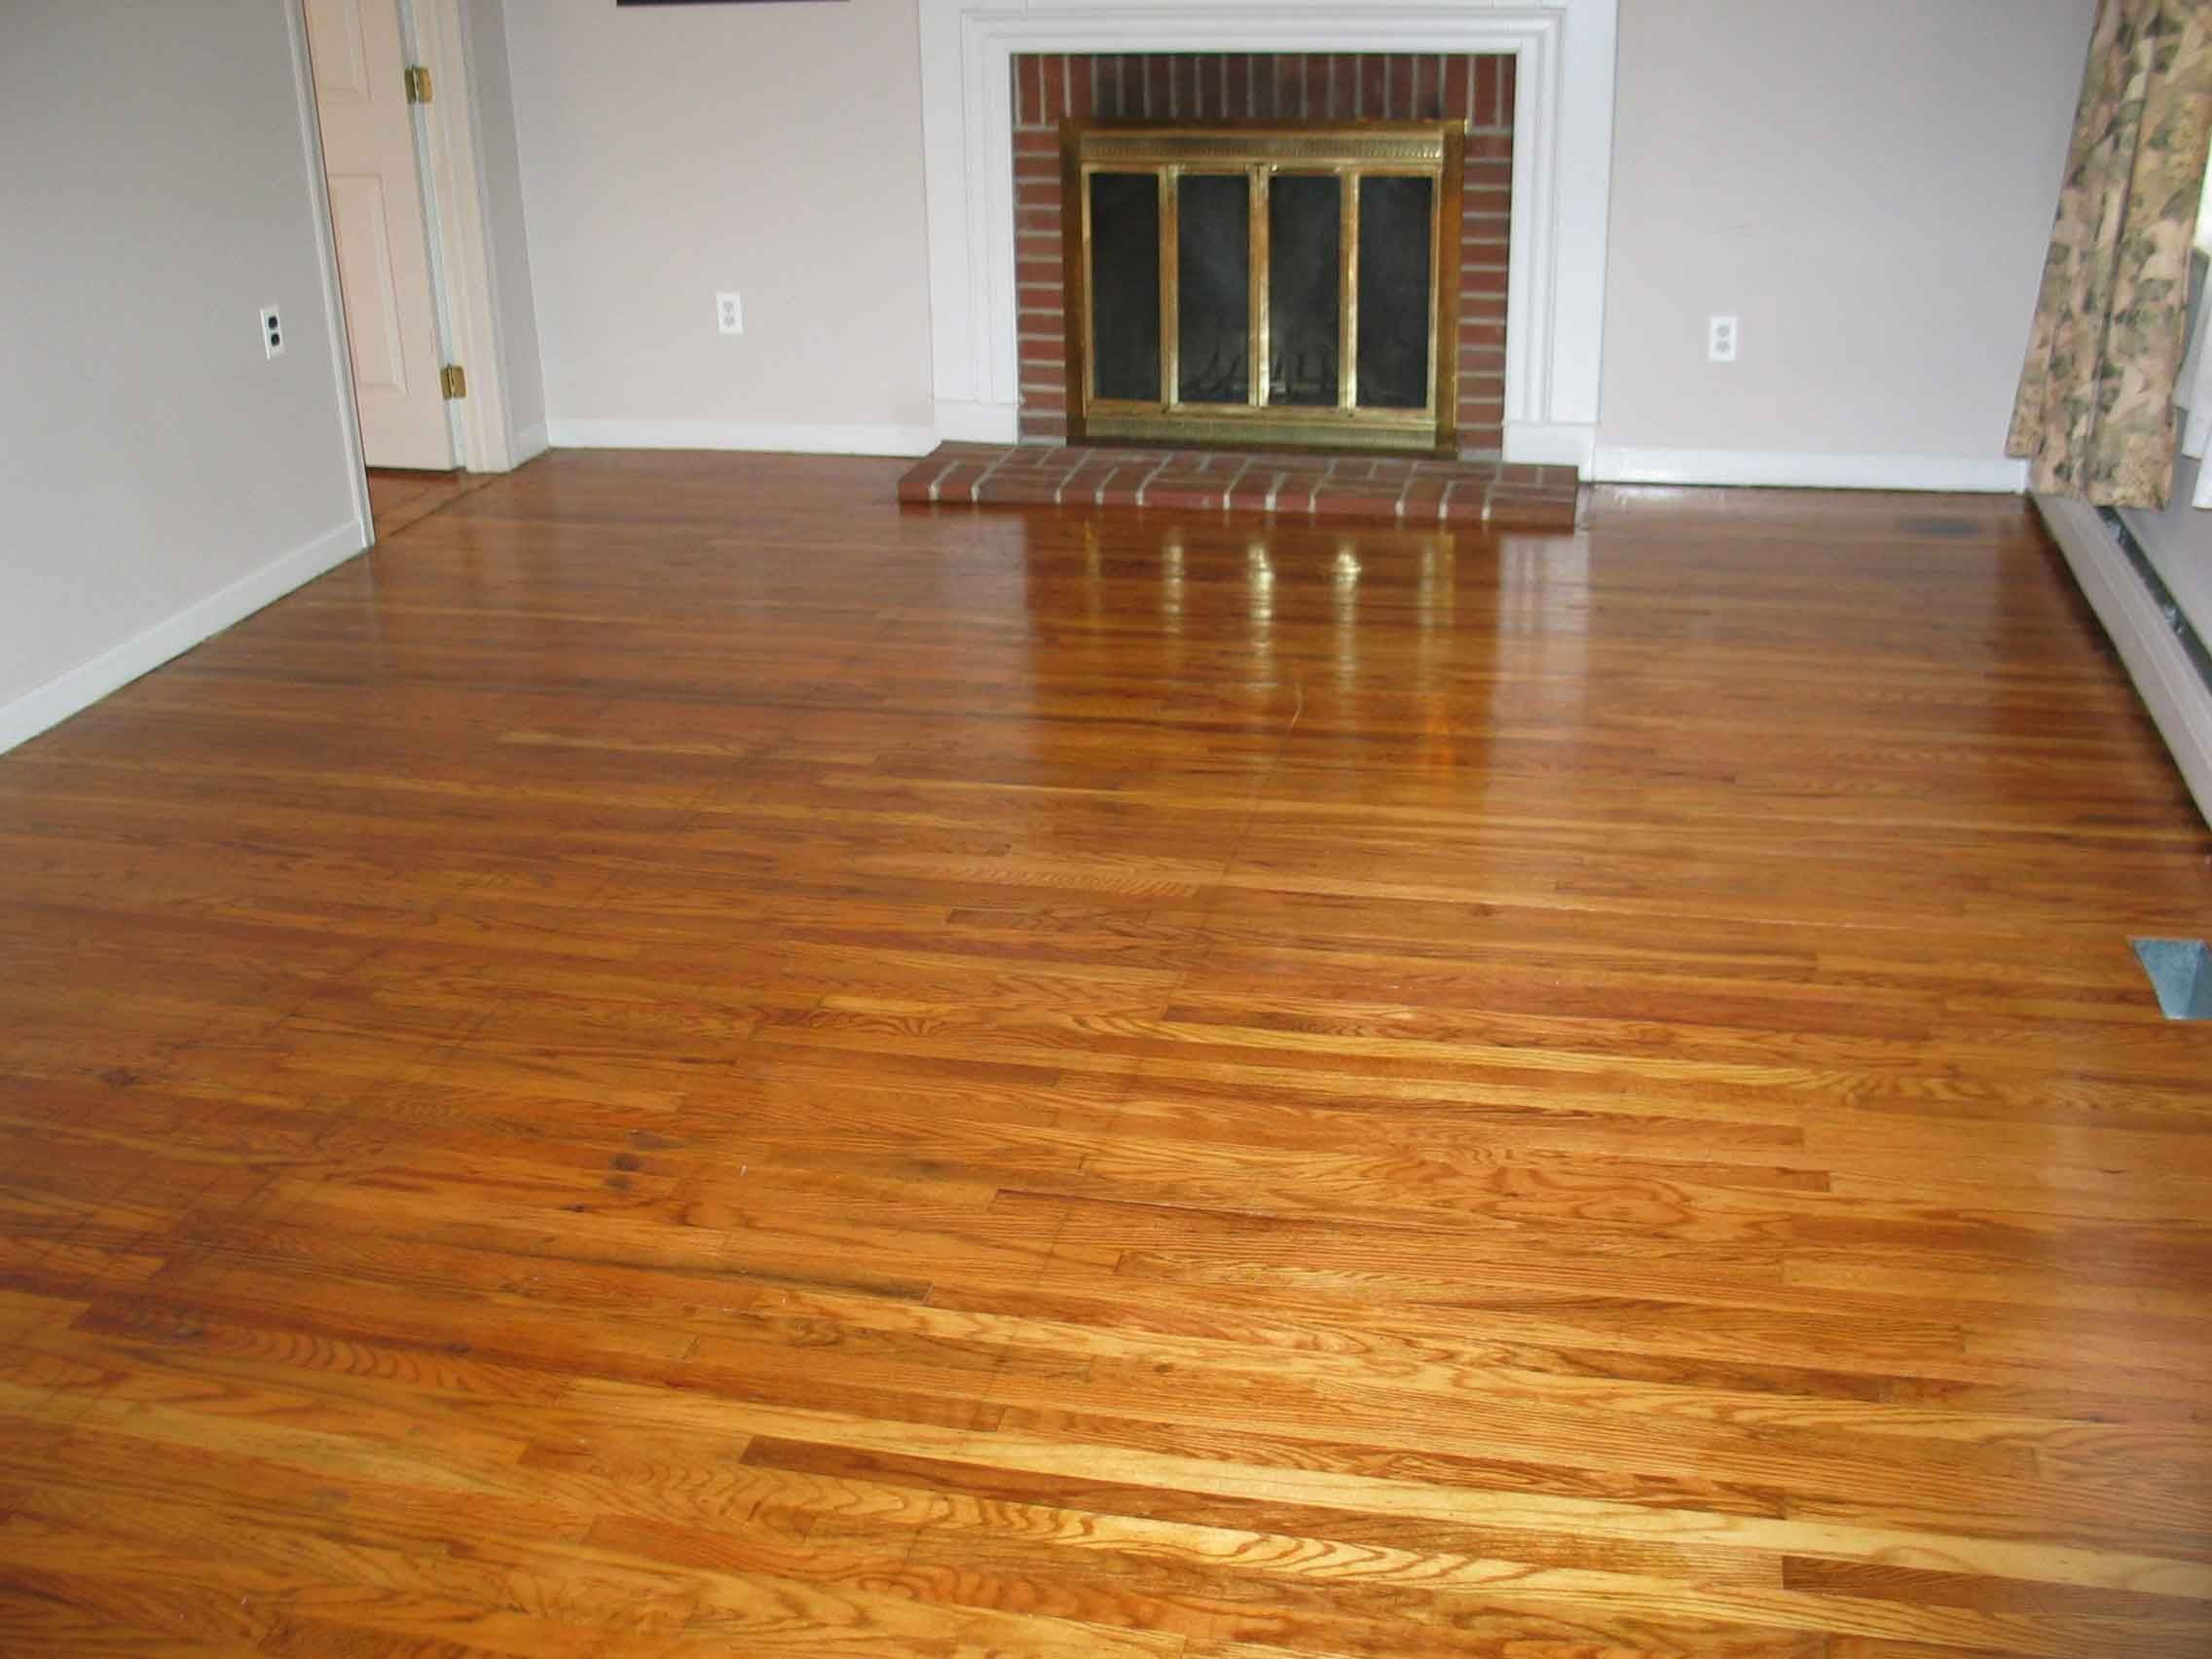 Mr Sandless Wood Floor Refinishing Seriously Going To Have To